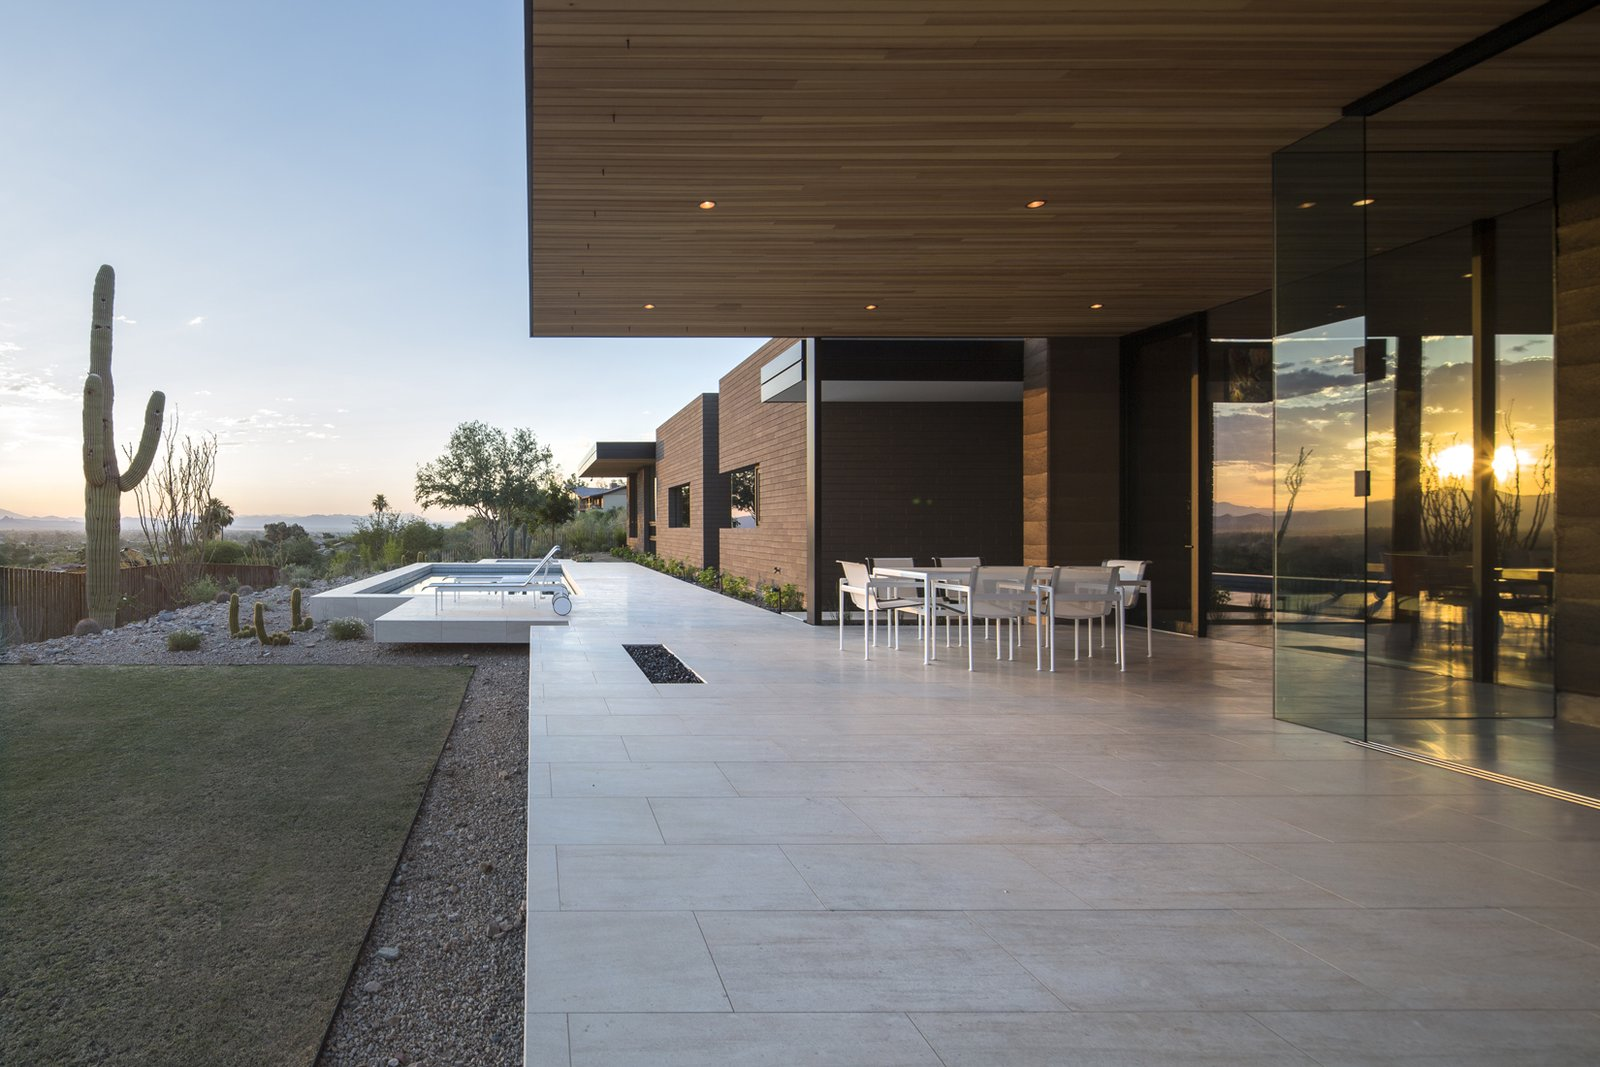 Outdoor, Shrubs, Grass, Back Yard, Trees, Hardscapes, Gardens, Small Pools, Tubs, Shower, Salt Water Pools, Tubs, Shower, Swimming Pools, Tubs, Shower, Large Patio, Porch, Deck, Concrete Pools, Tubs, Shower, Stone Patio, Porch, Deck, Metal Fences, Wall, and Vertical Fences, Wall  Rammed Earth Modern